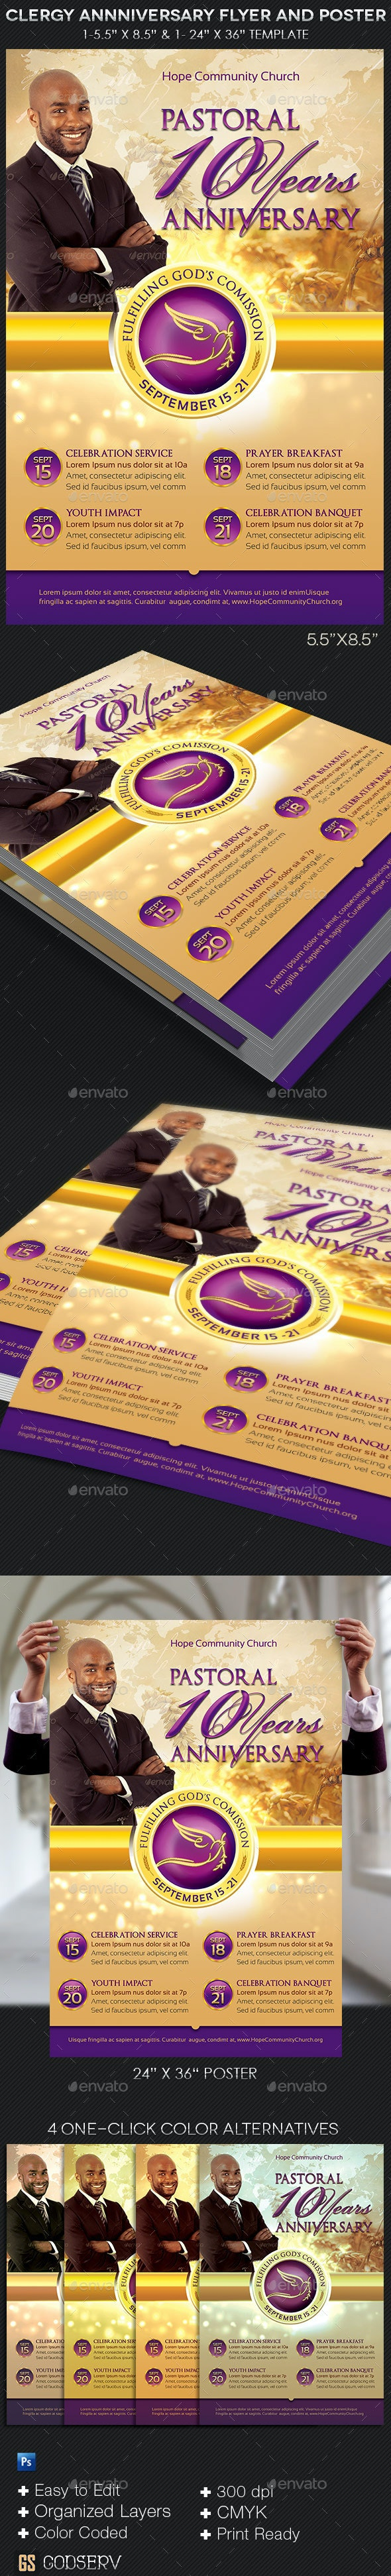 Clergy Anniversary Flyer Poster Template - Church Flyers